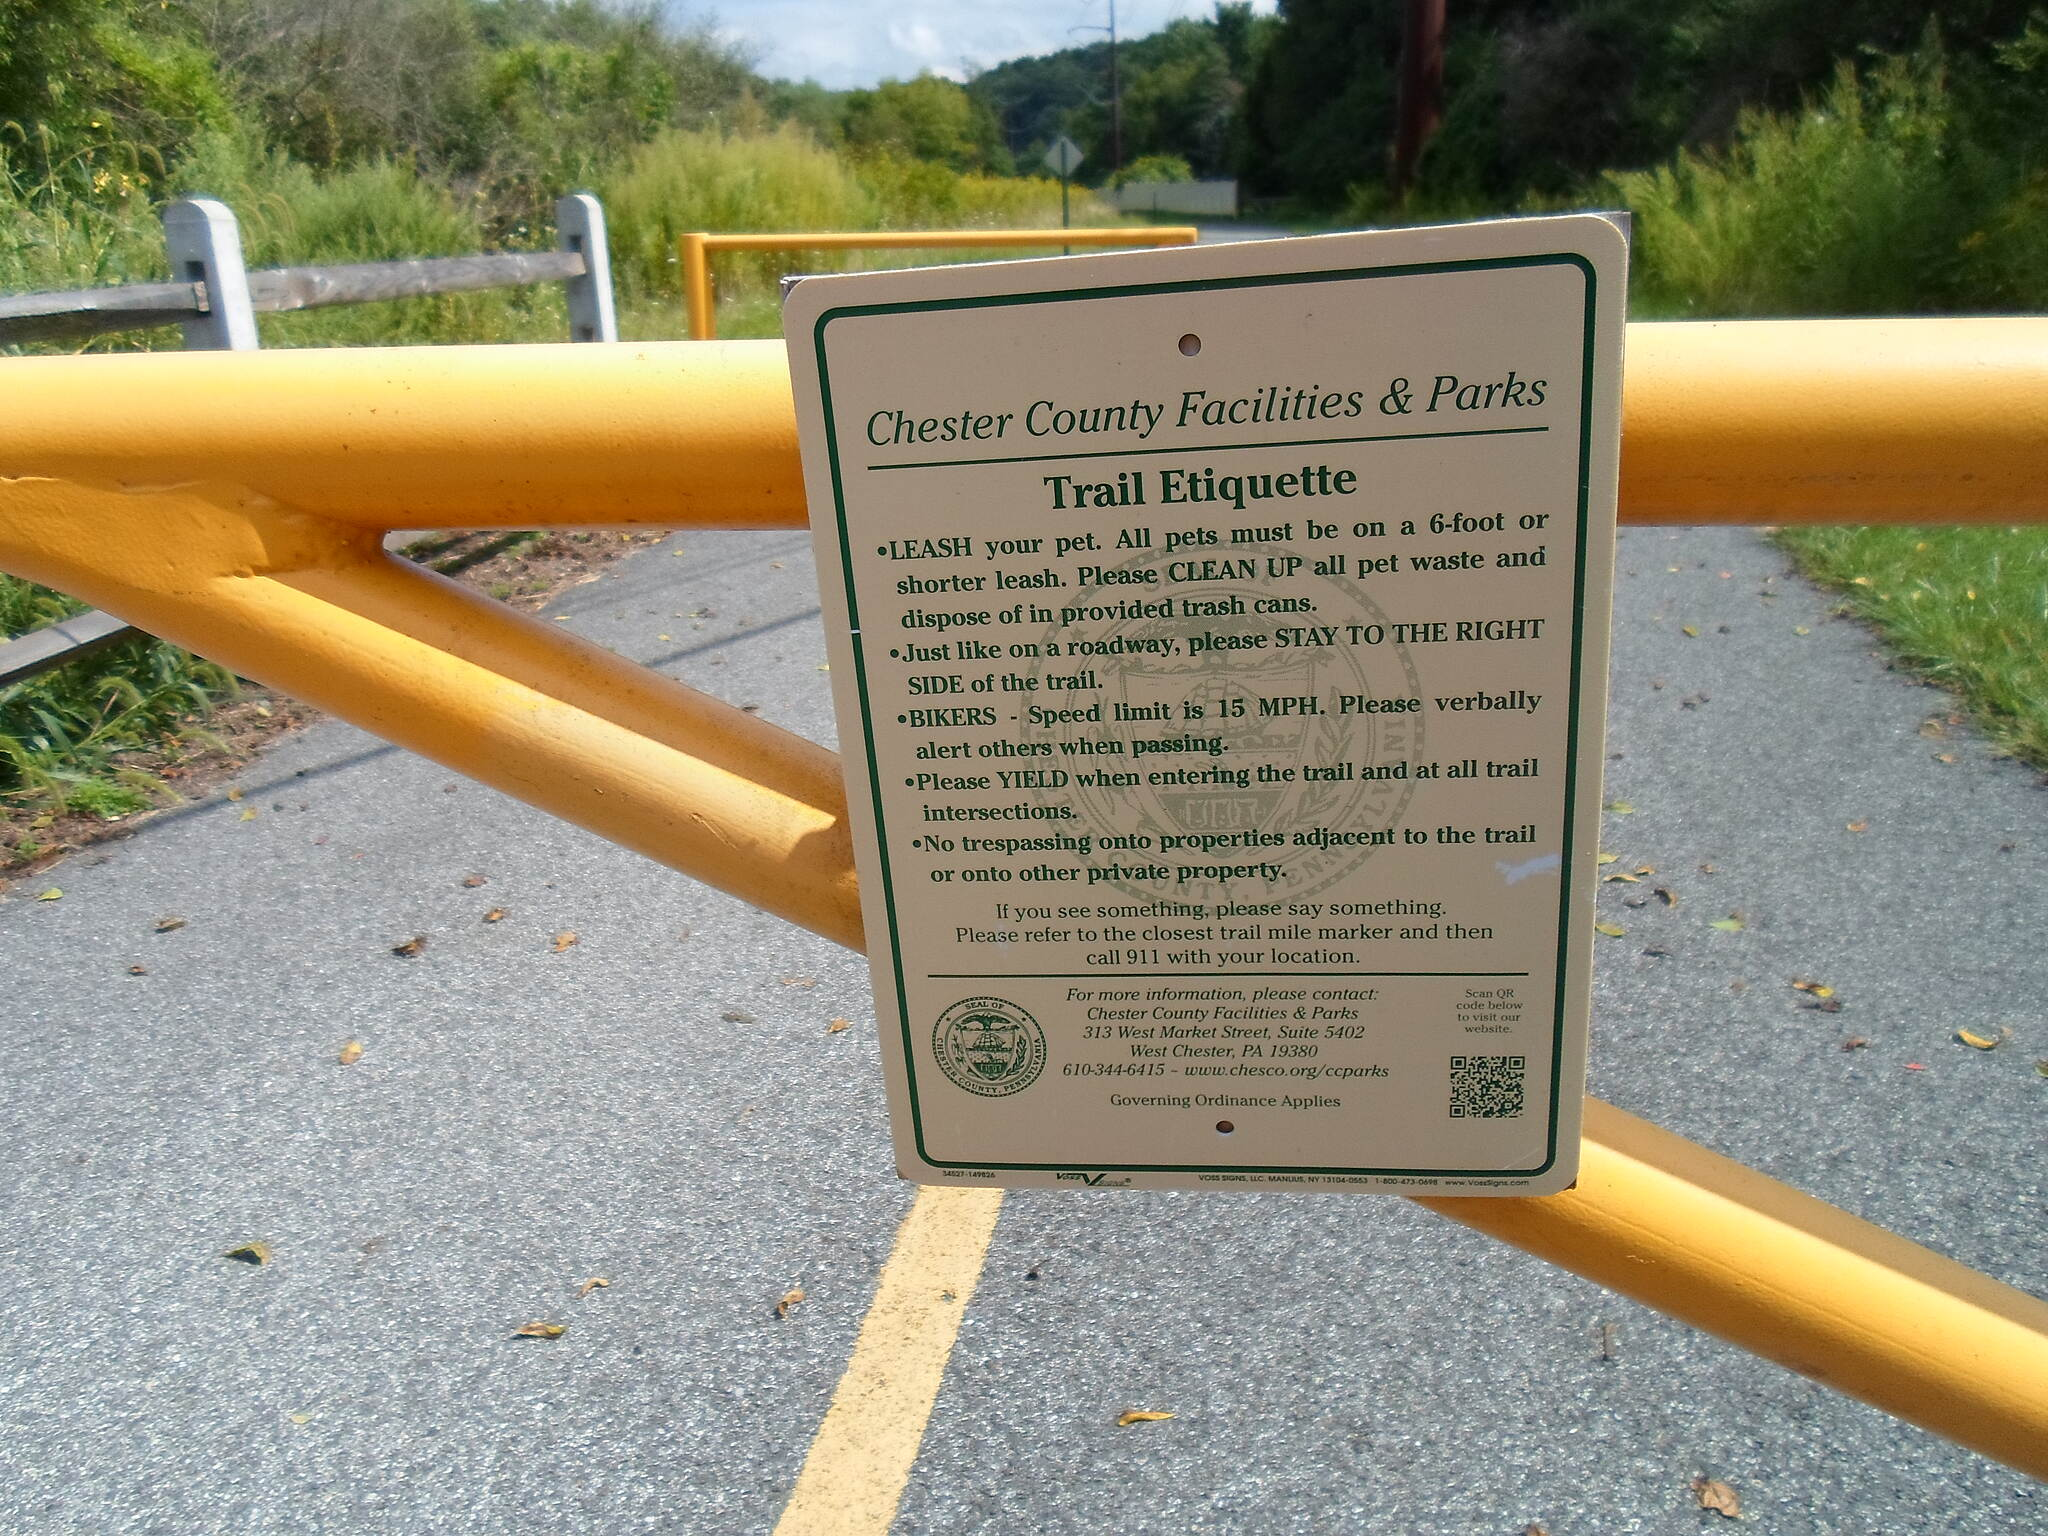 Schuylkill River Trail Schuylkill River Trail Trail rules posted on sign on the gate at the Old Schuylkill Road crossing just southeast of Parker Ford. Taken Sept. 2014.